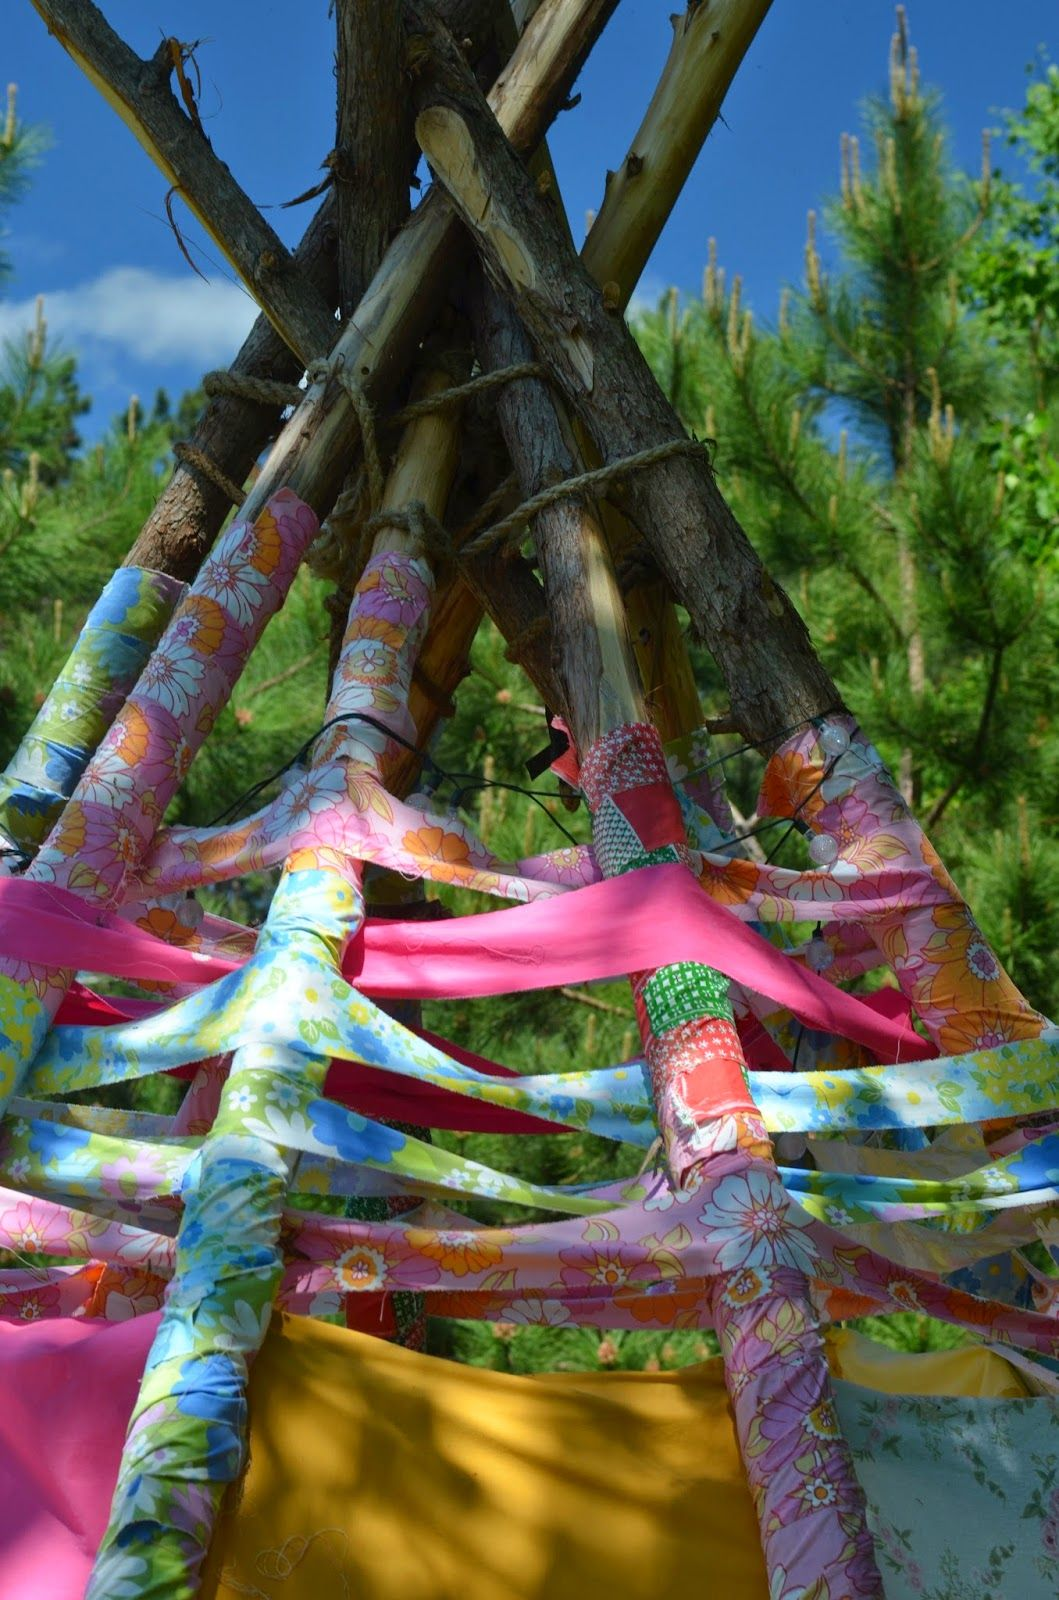 So here is our finished teepee…made entirely out of recycled bedsheets and cedar poles      I will try to explain the process below    is part of Fabric teepee -